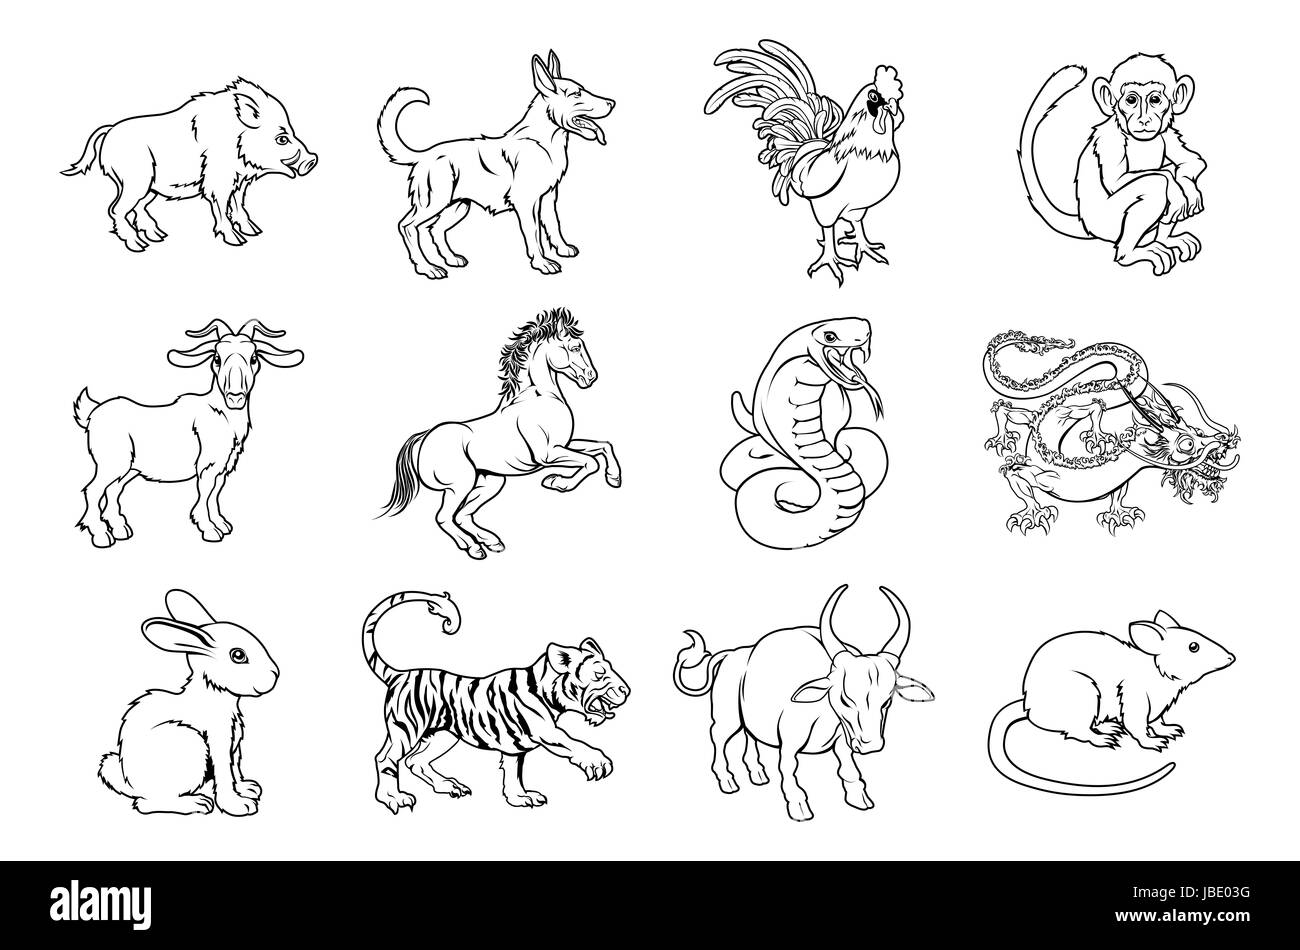 Illustrations of all twelve Chinese zodiac sign icon animals - Stock Image